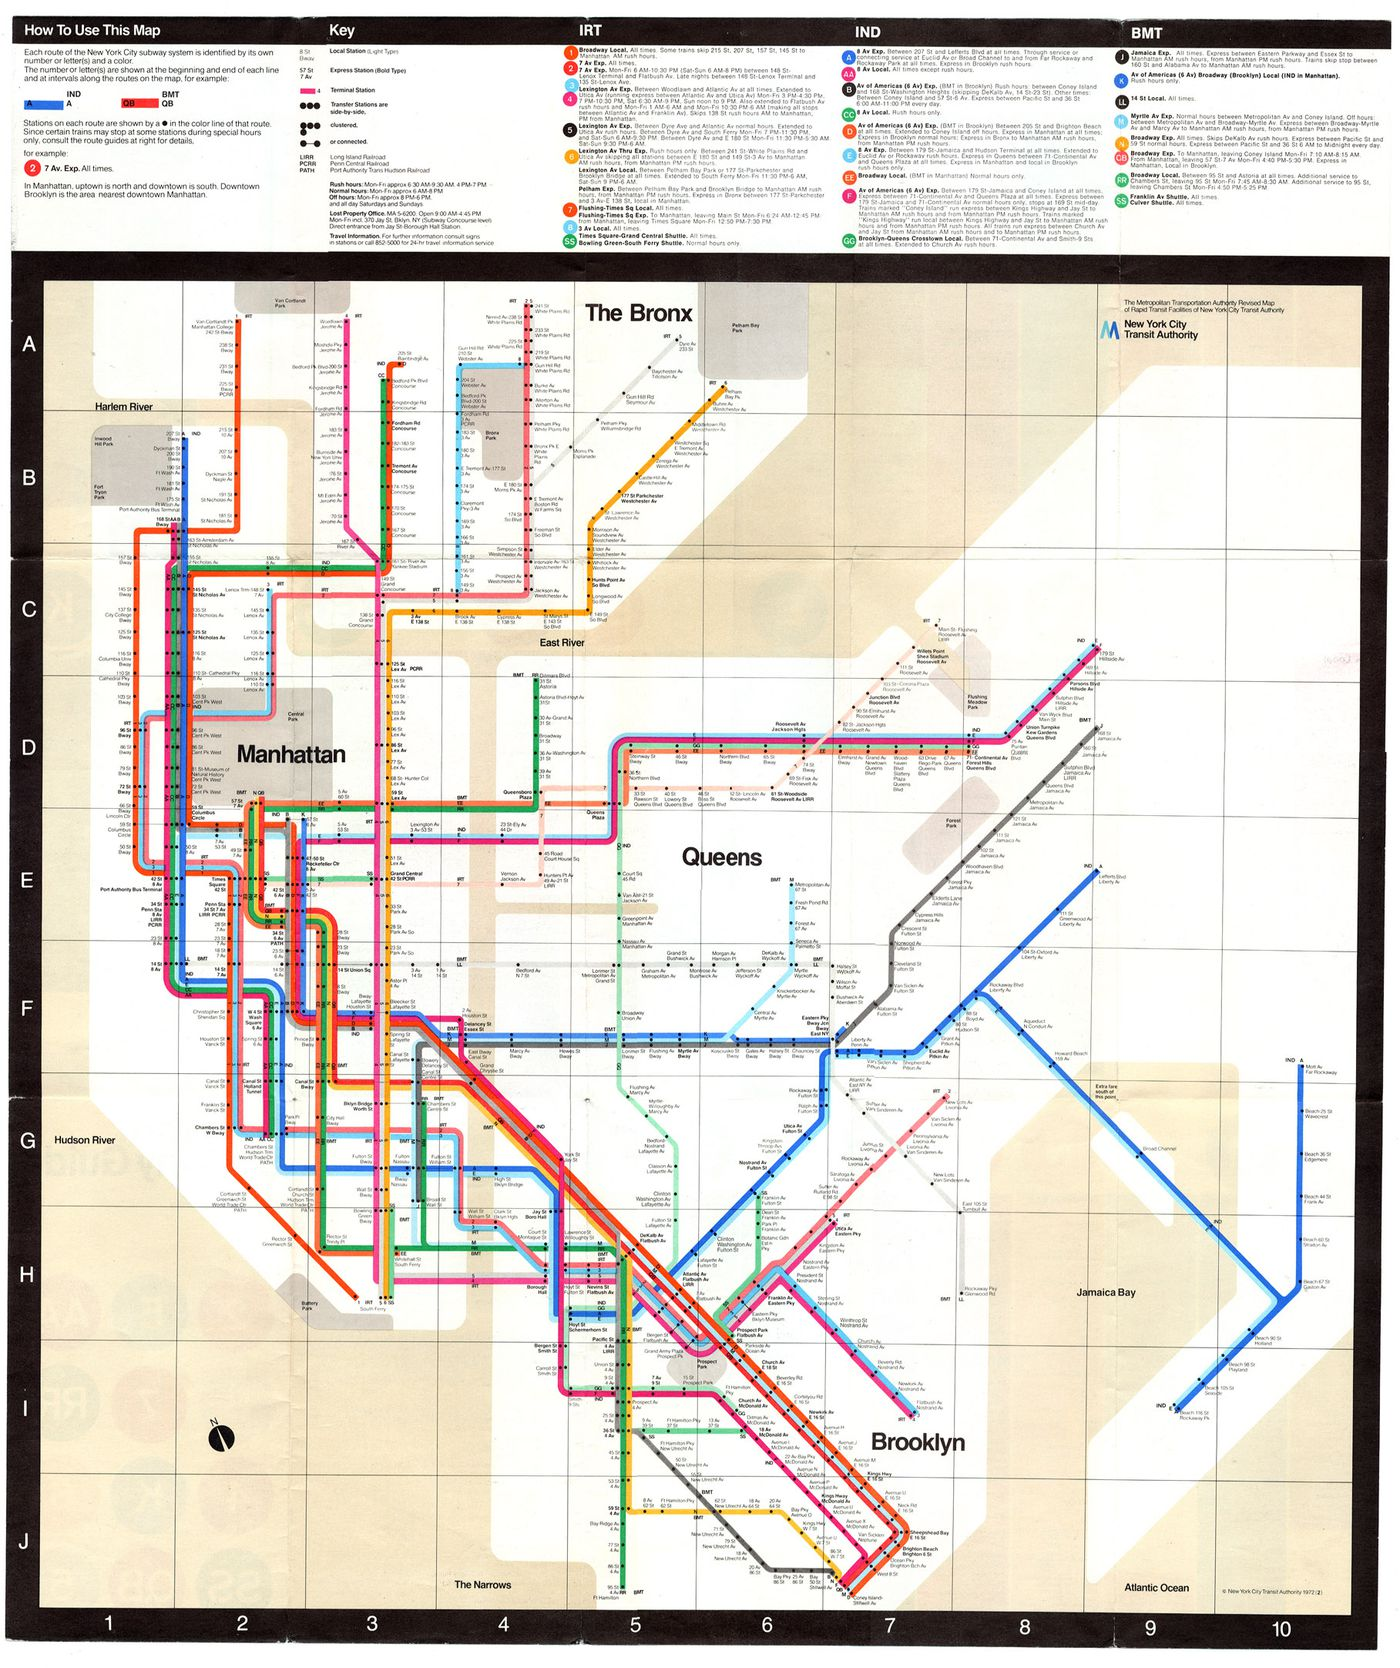 New York City Subway Map Brooklyn.Nyc Subway Map S History And Influence Examined In New Museum